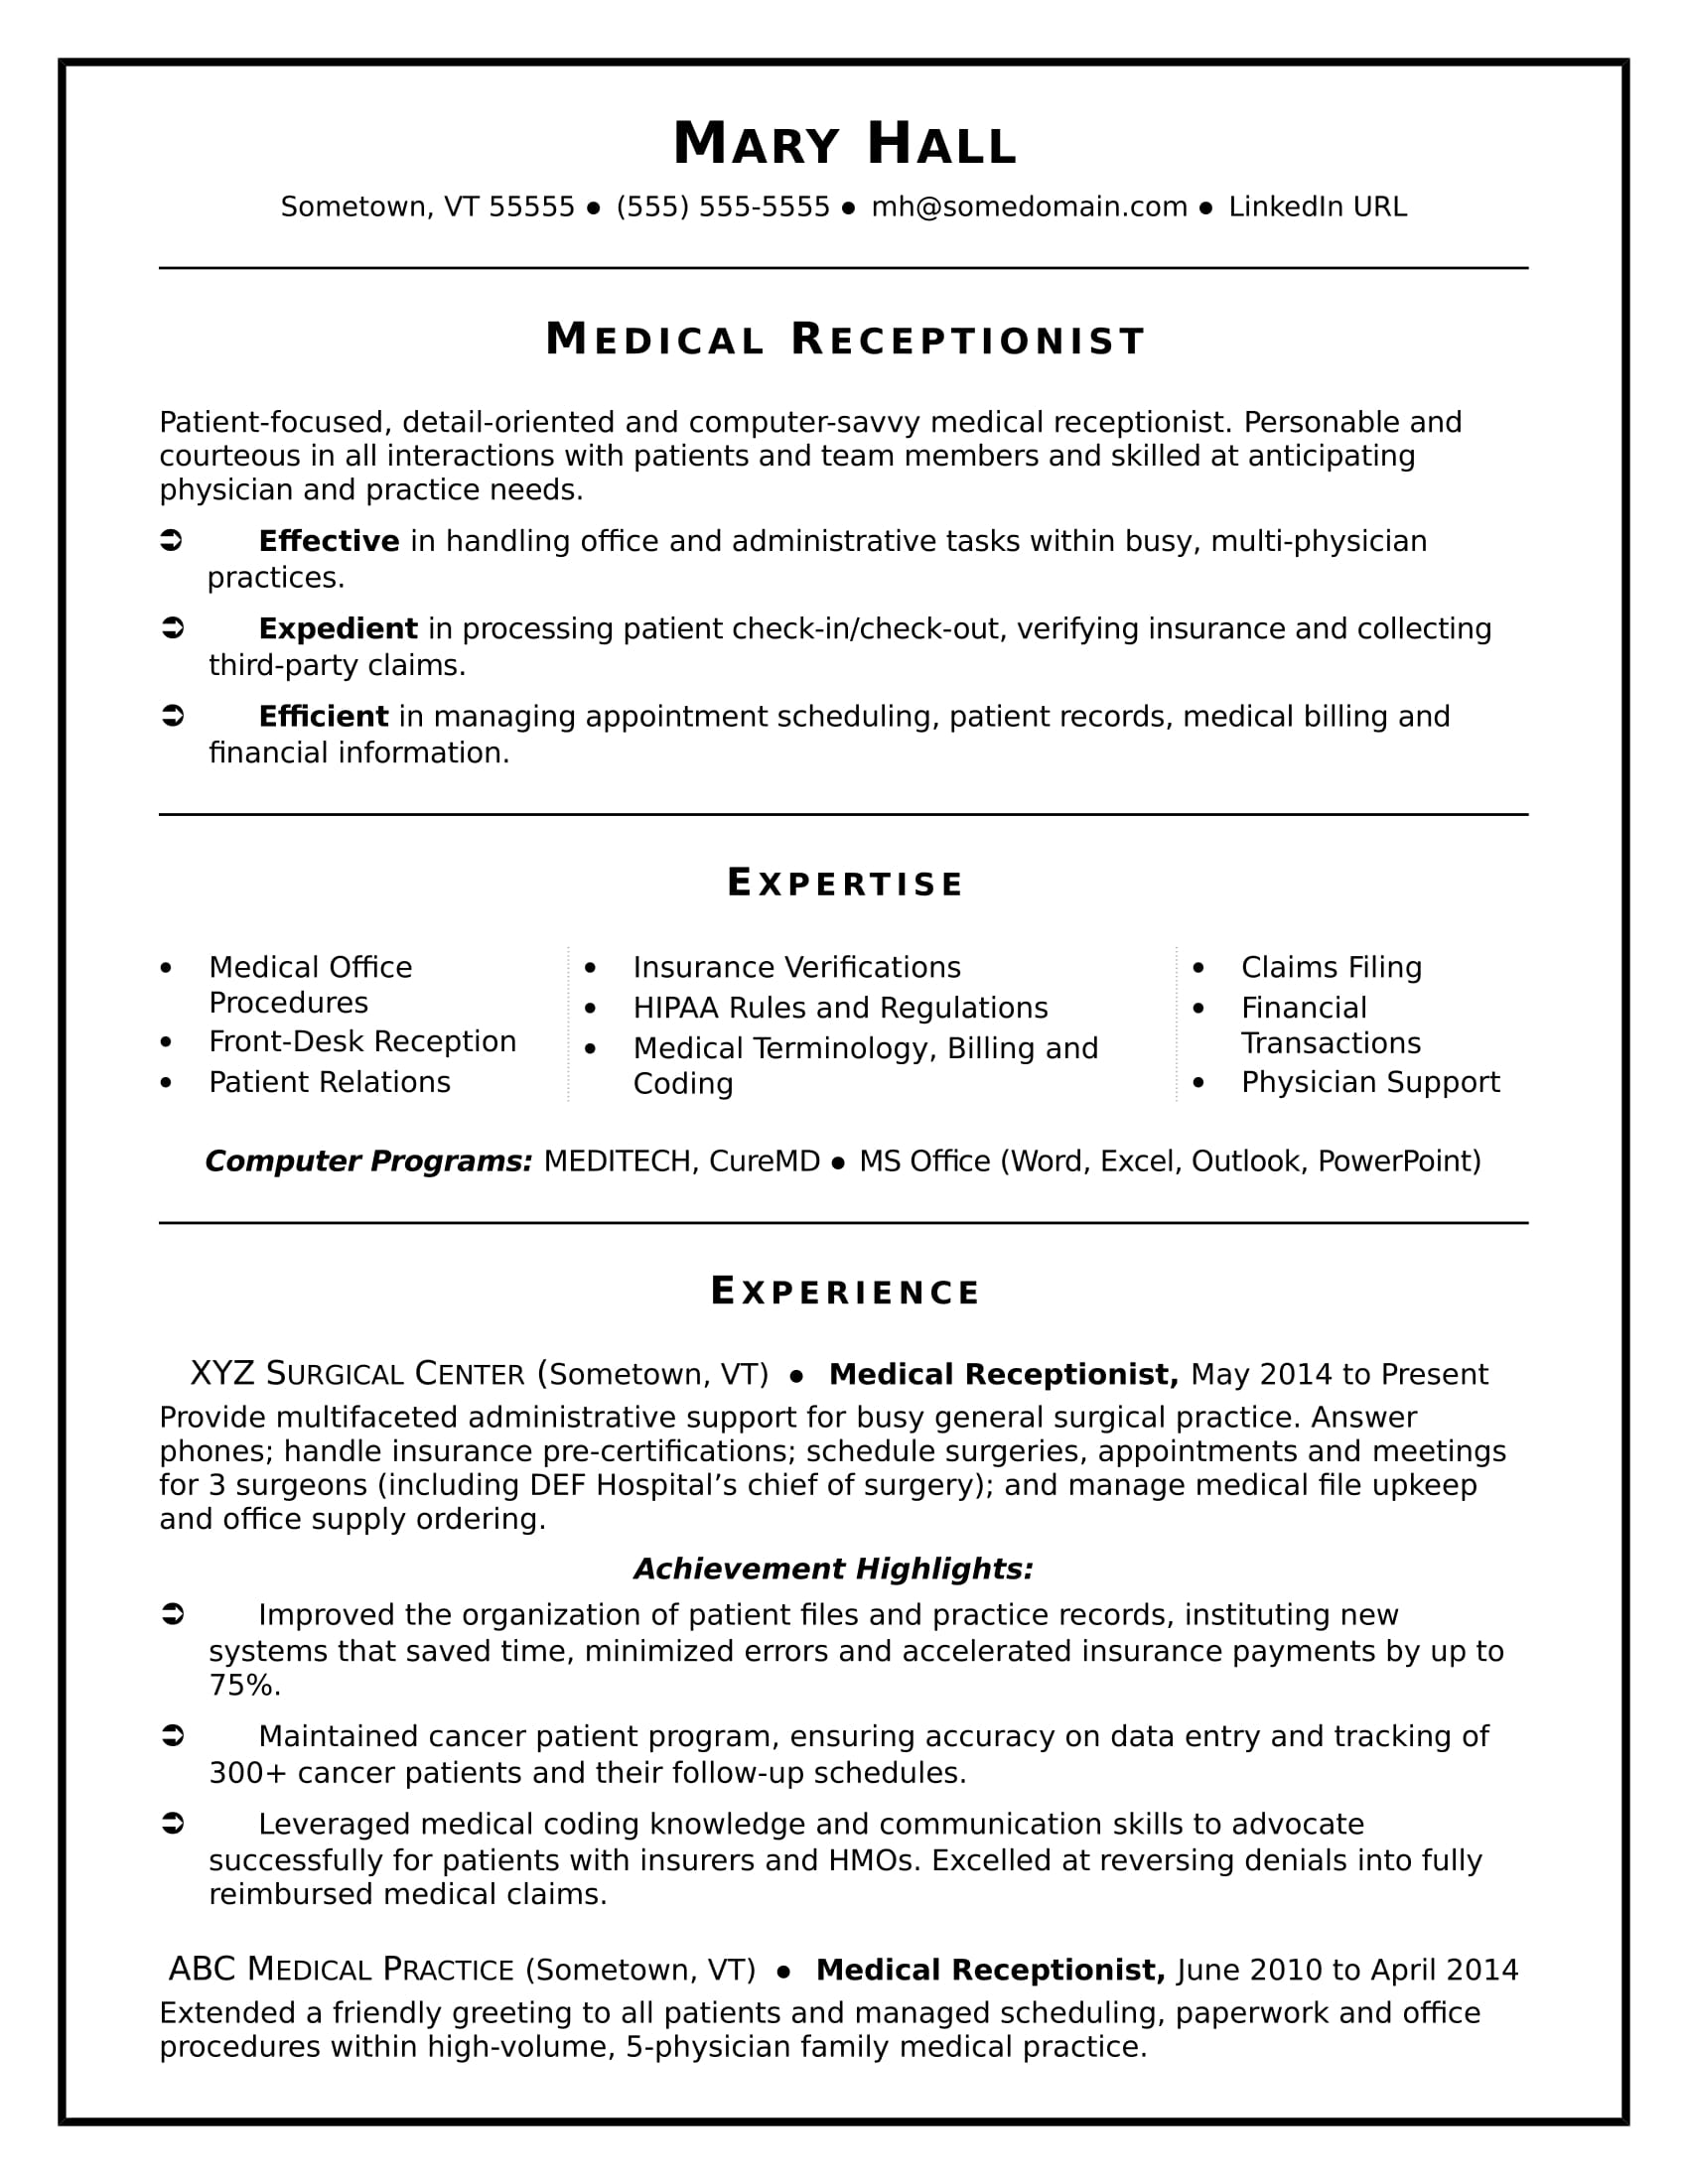 medical receptionist resume sample resume doctors - Sample Receptionist Resume Doc